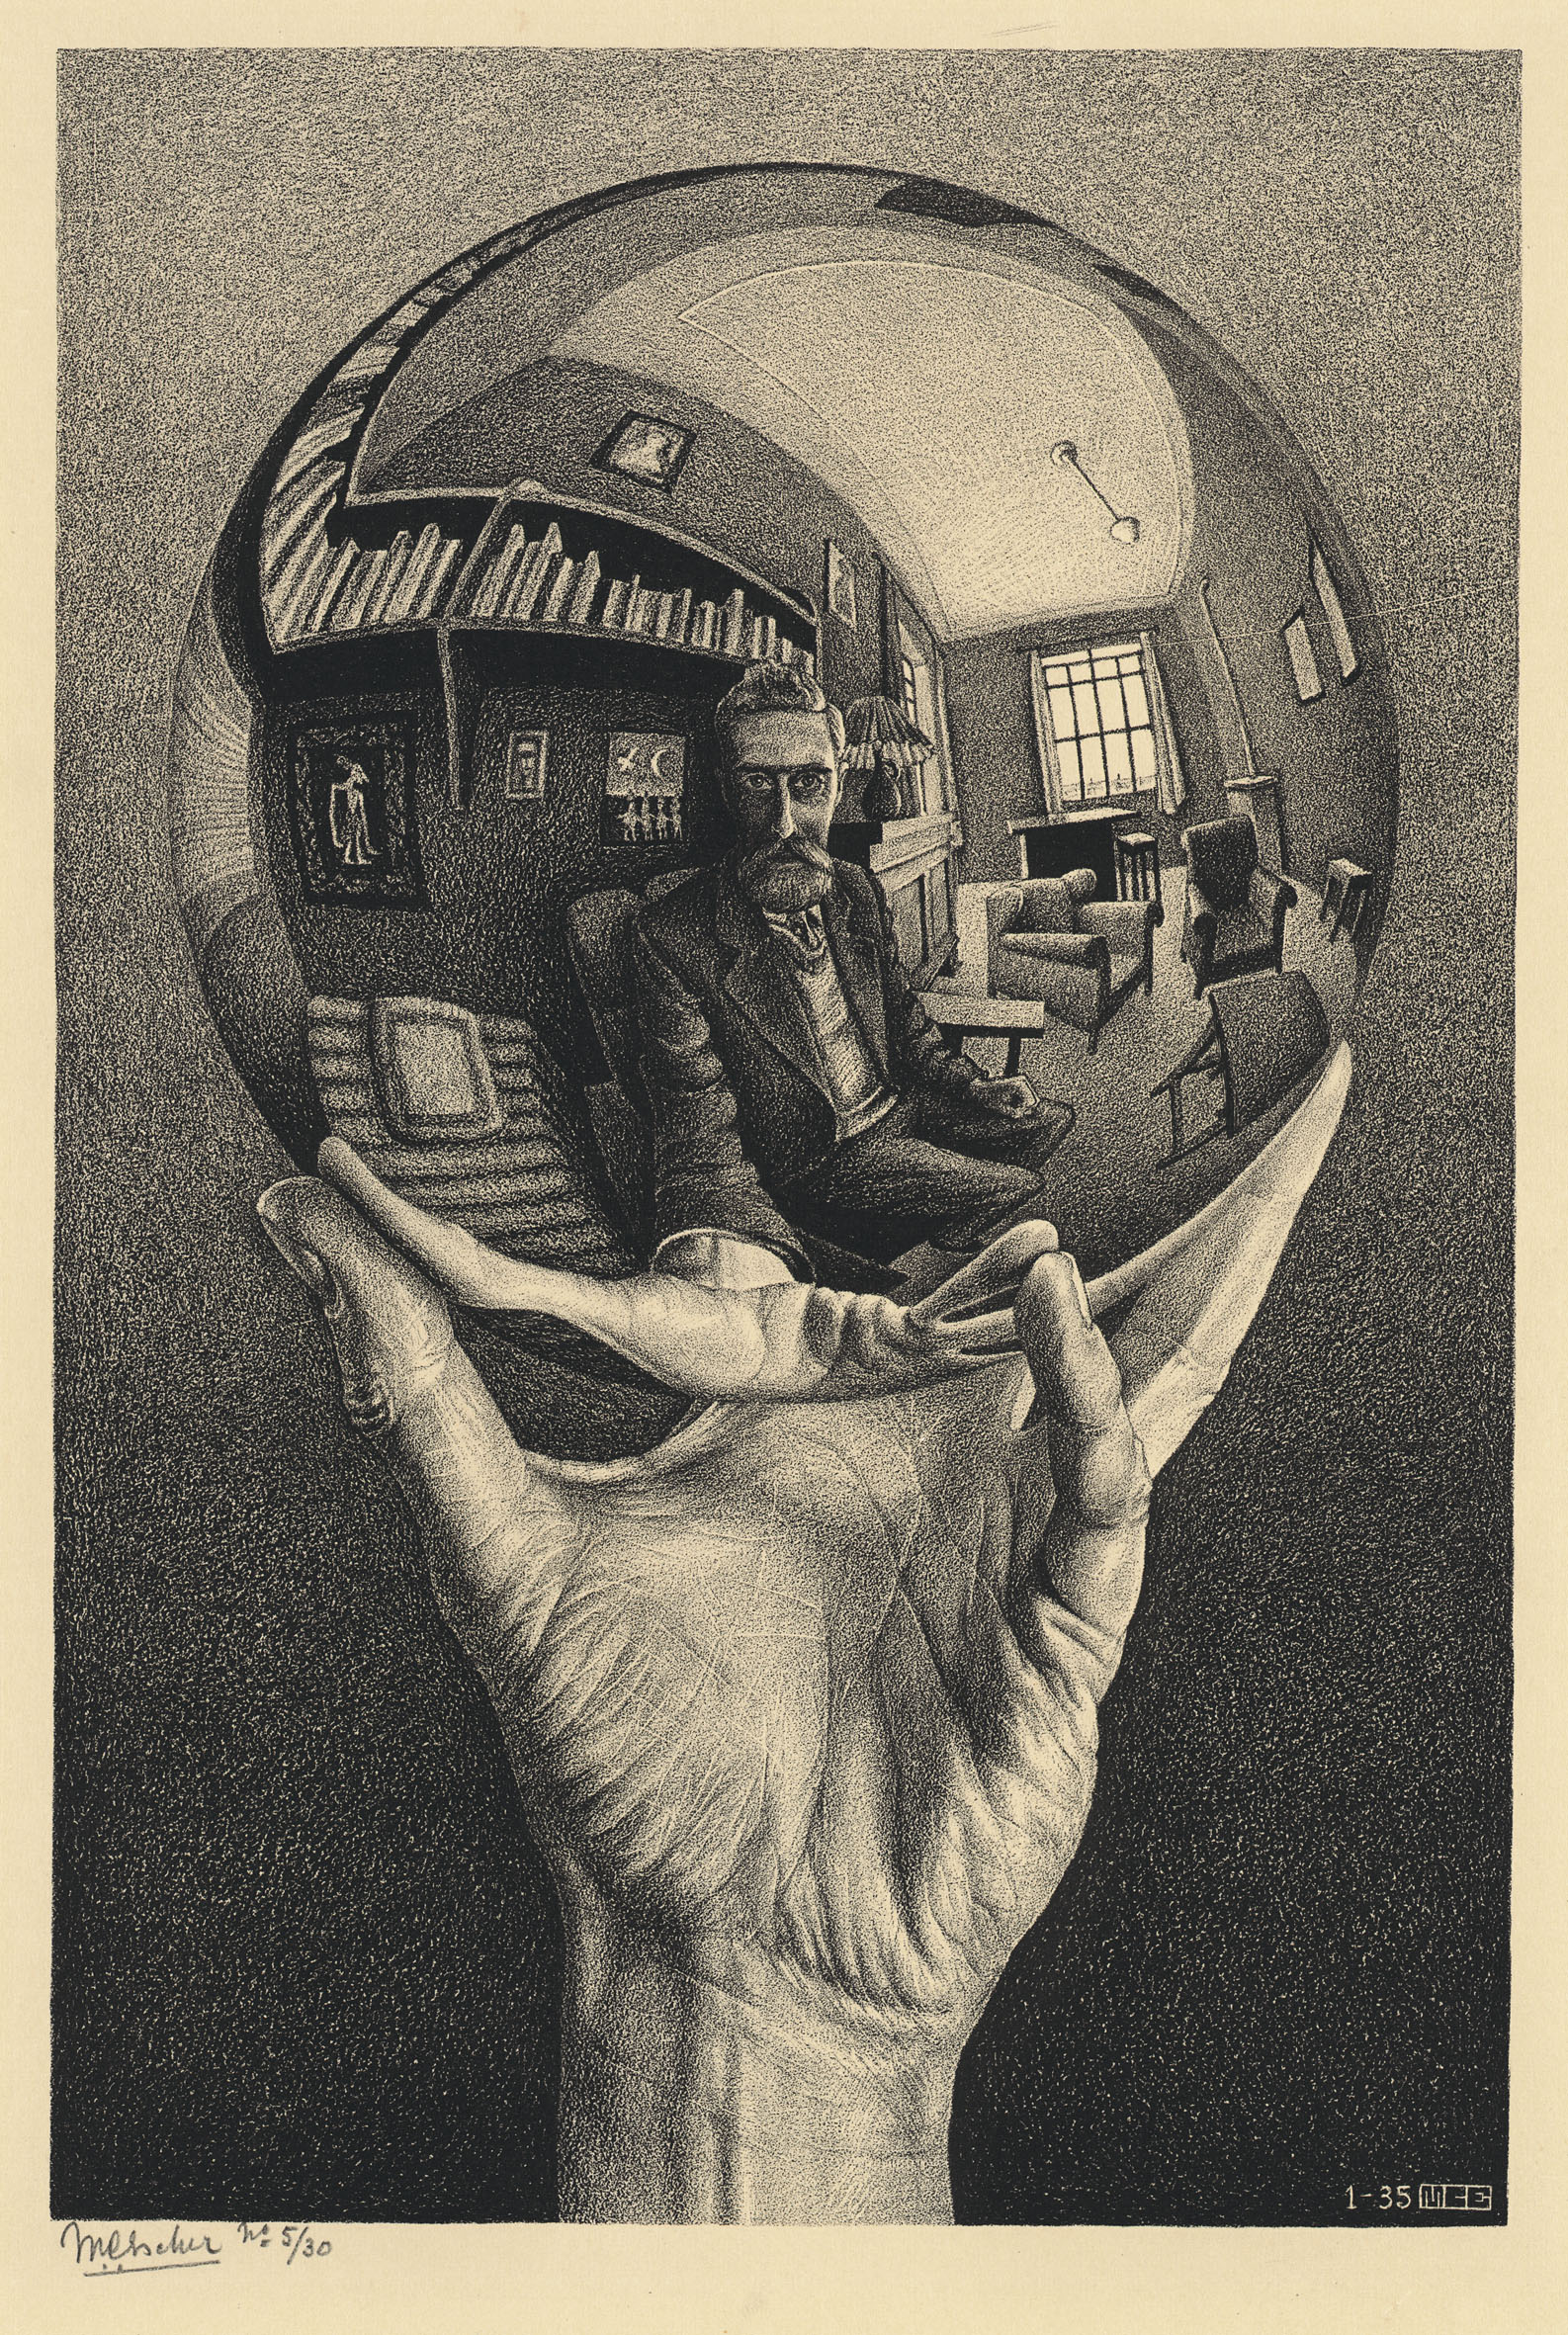 Vicky choice #1 - Hand with Reflection by M.C. Escher